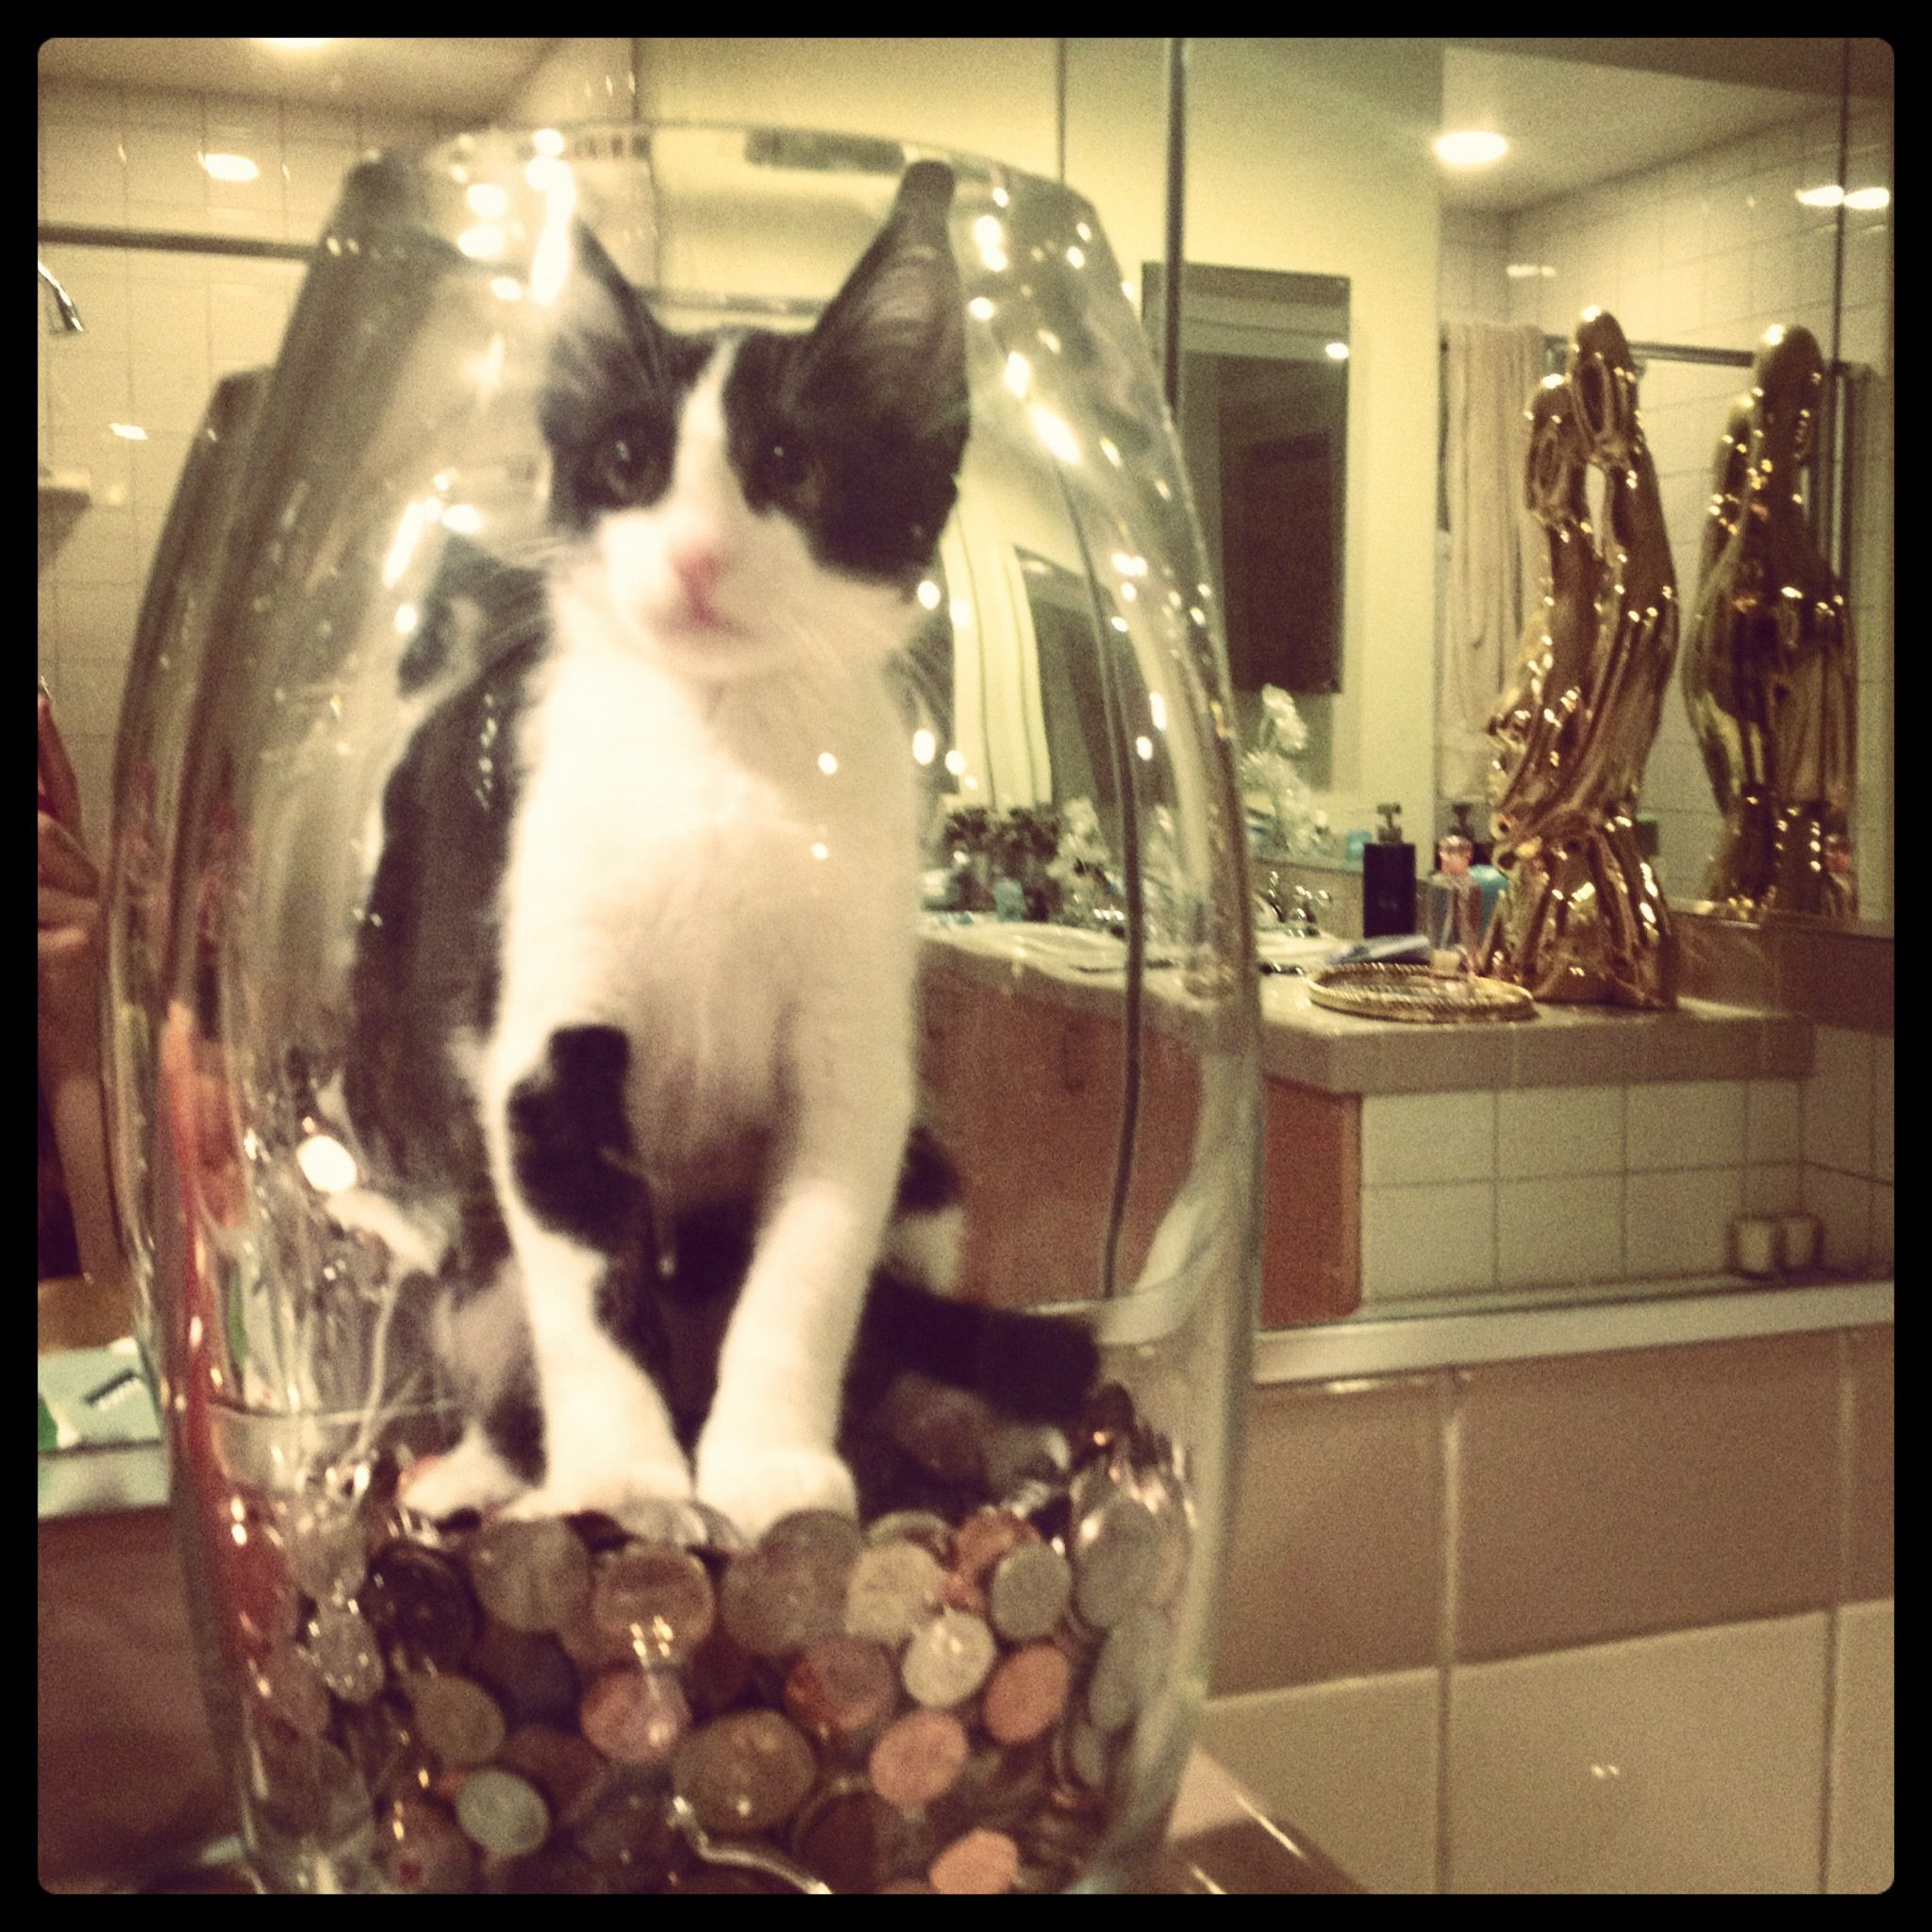 0 0 Cat Stuck in a Jar My Style Me Pinterest Cat and Animal